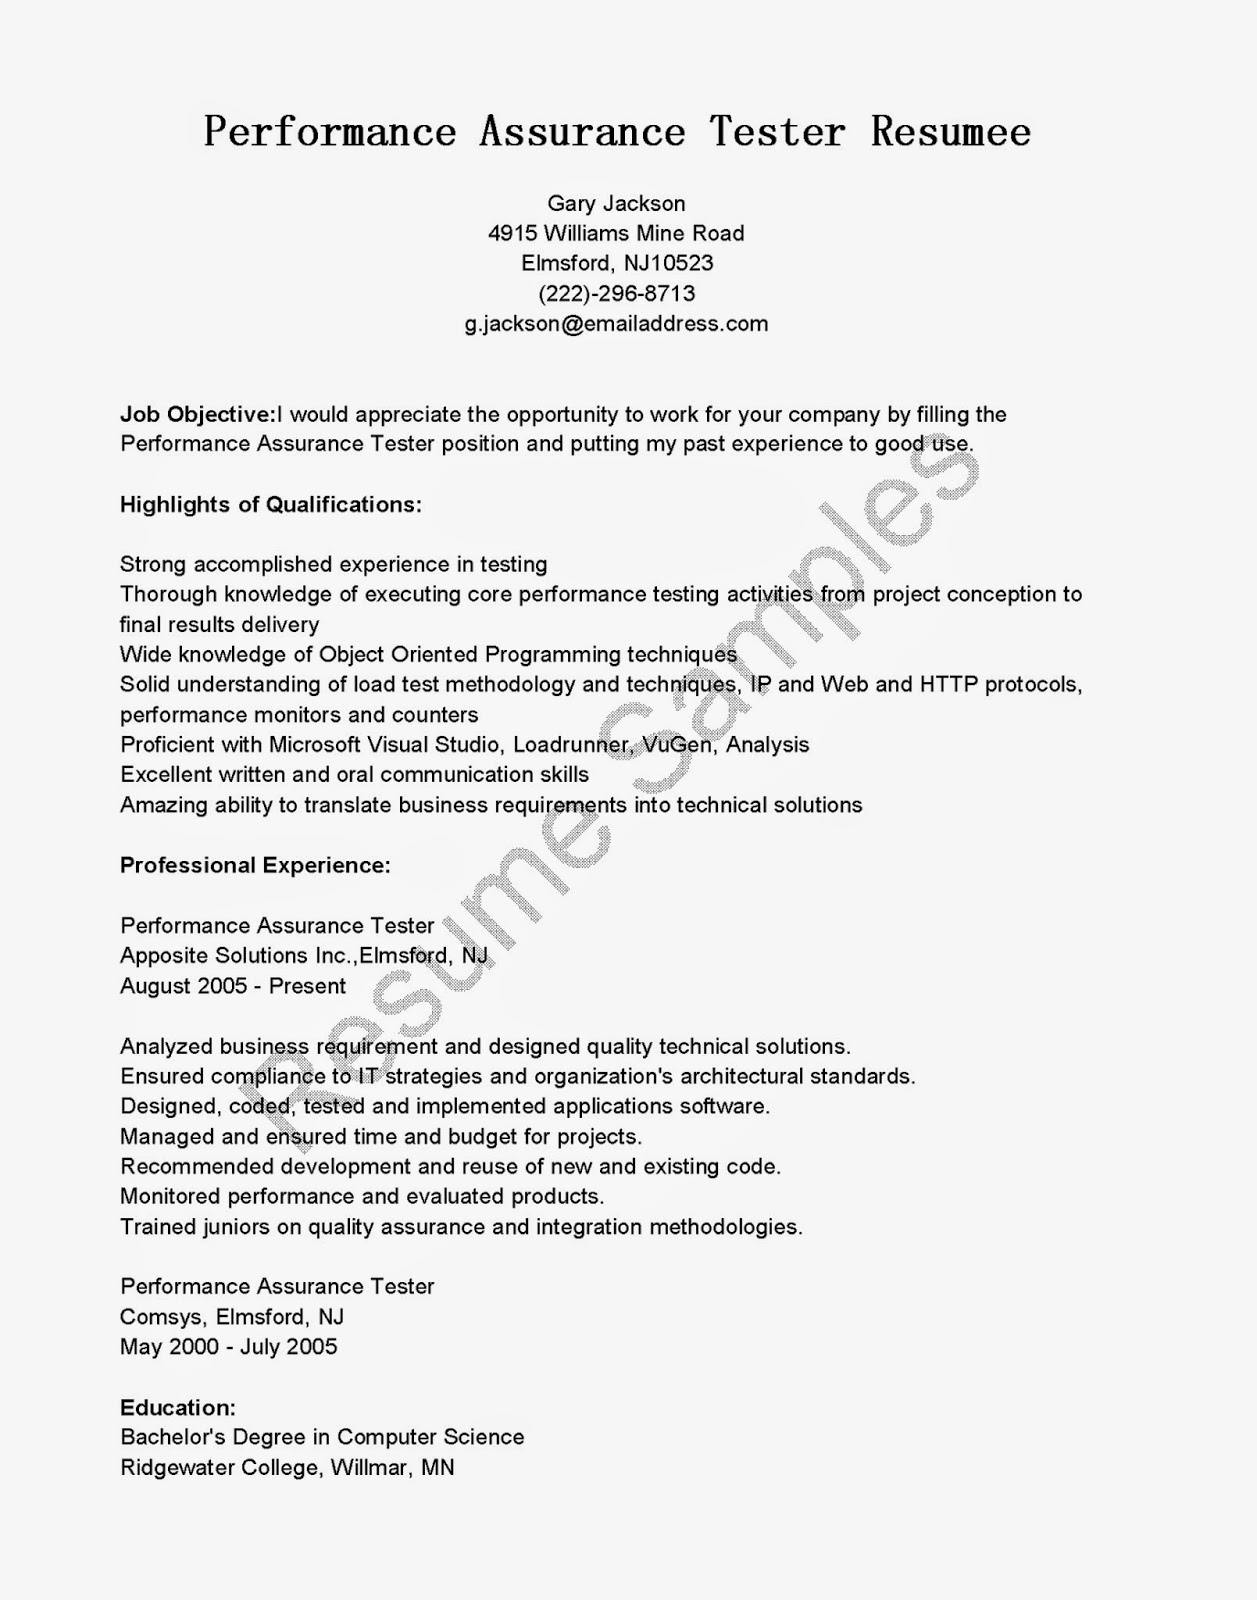 Sap Bi Resume Sample For Fresher - nmdnconference.com - Example ...